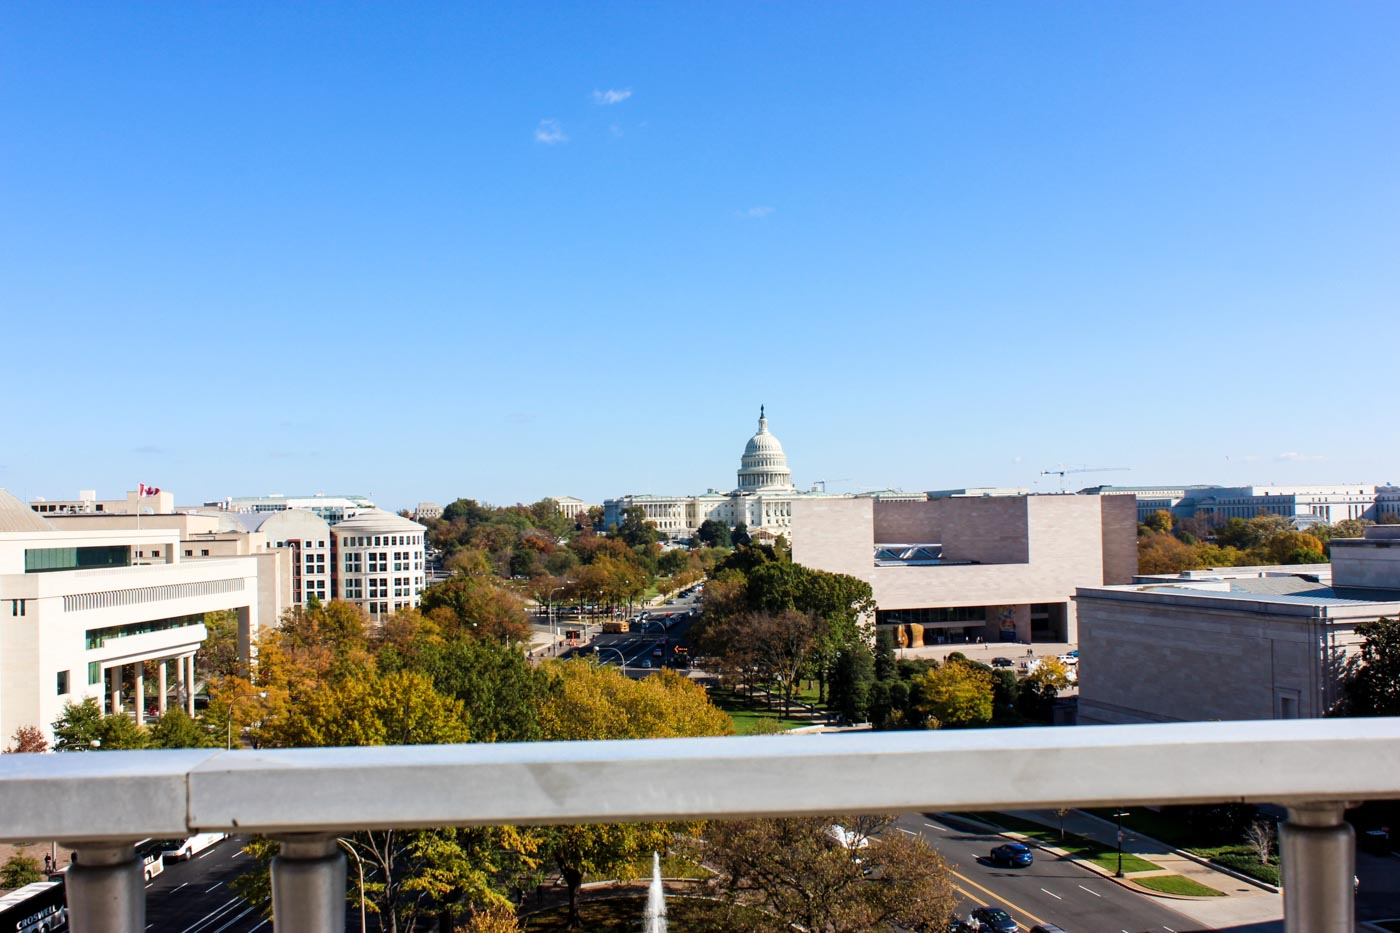 dc-travel-guide-1